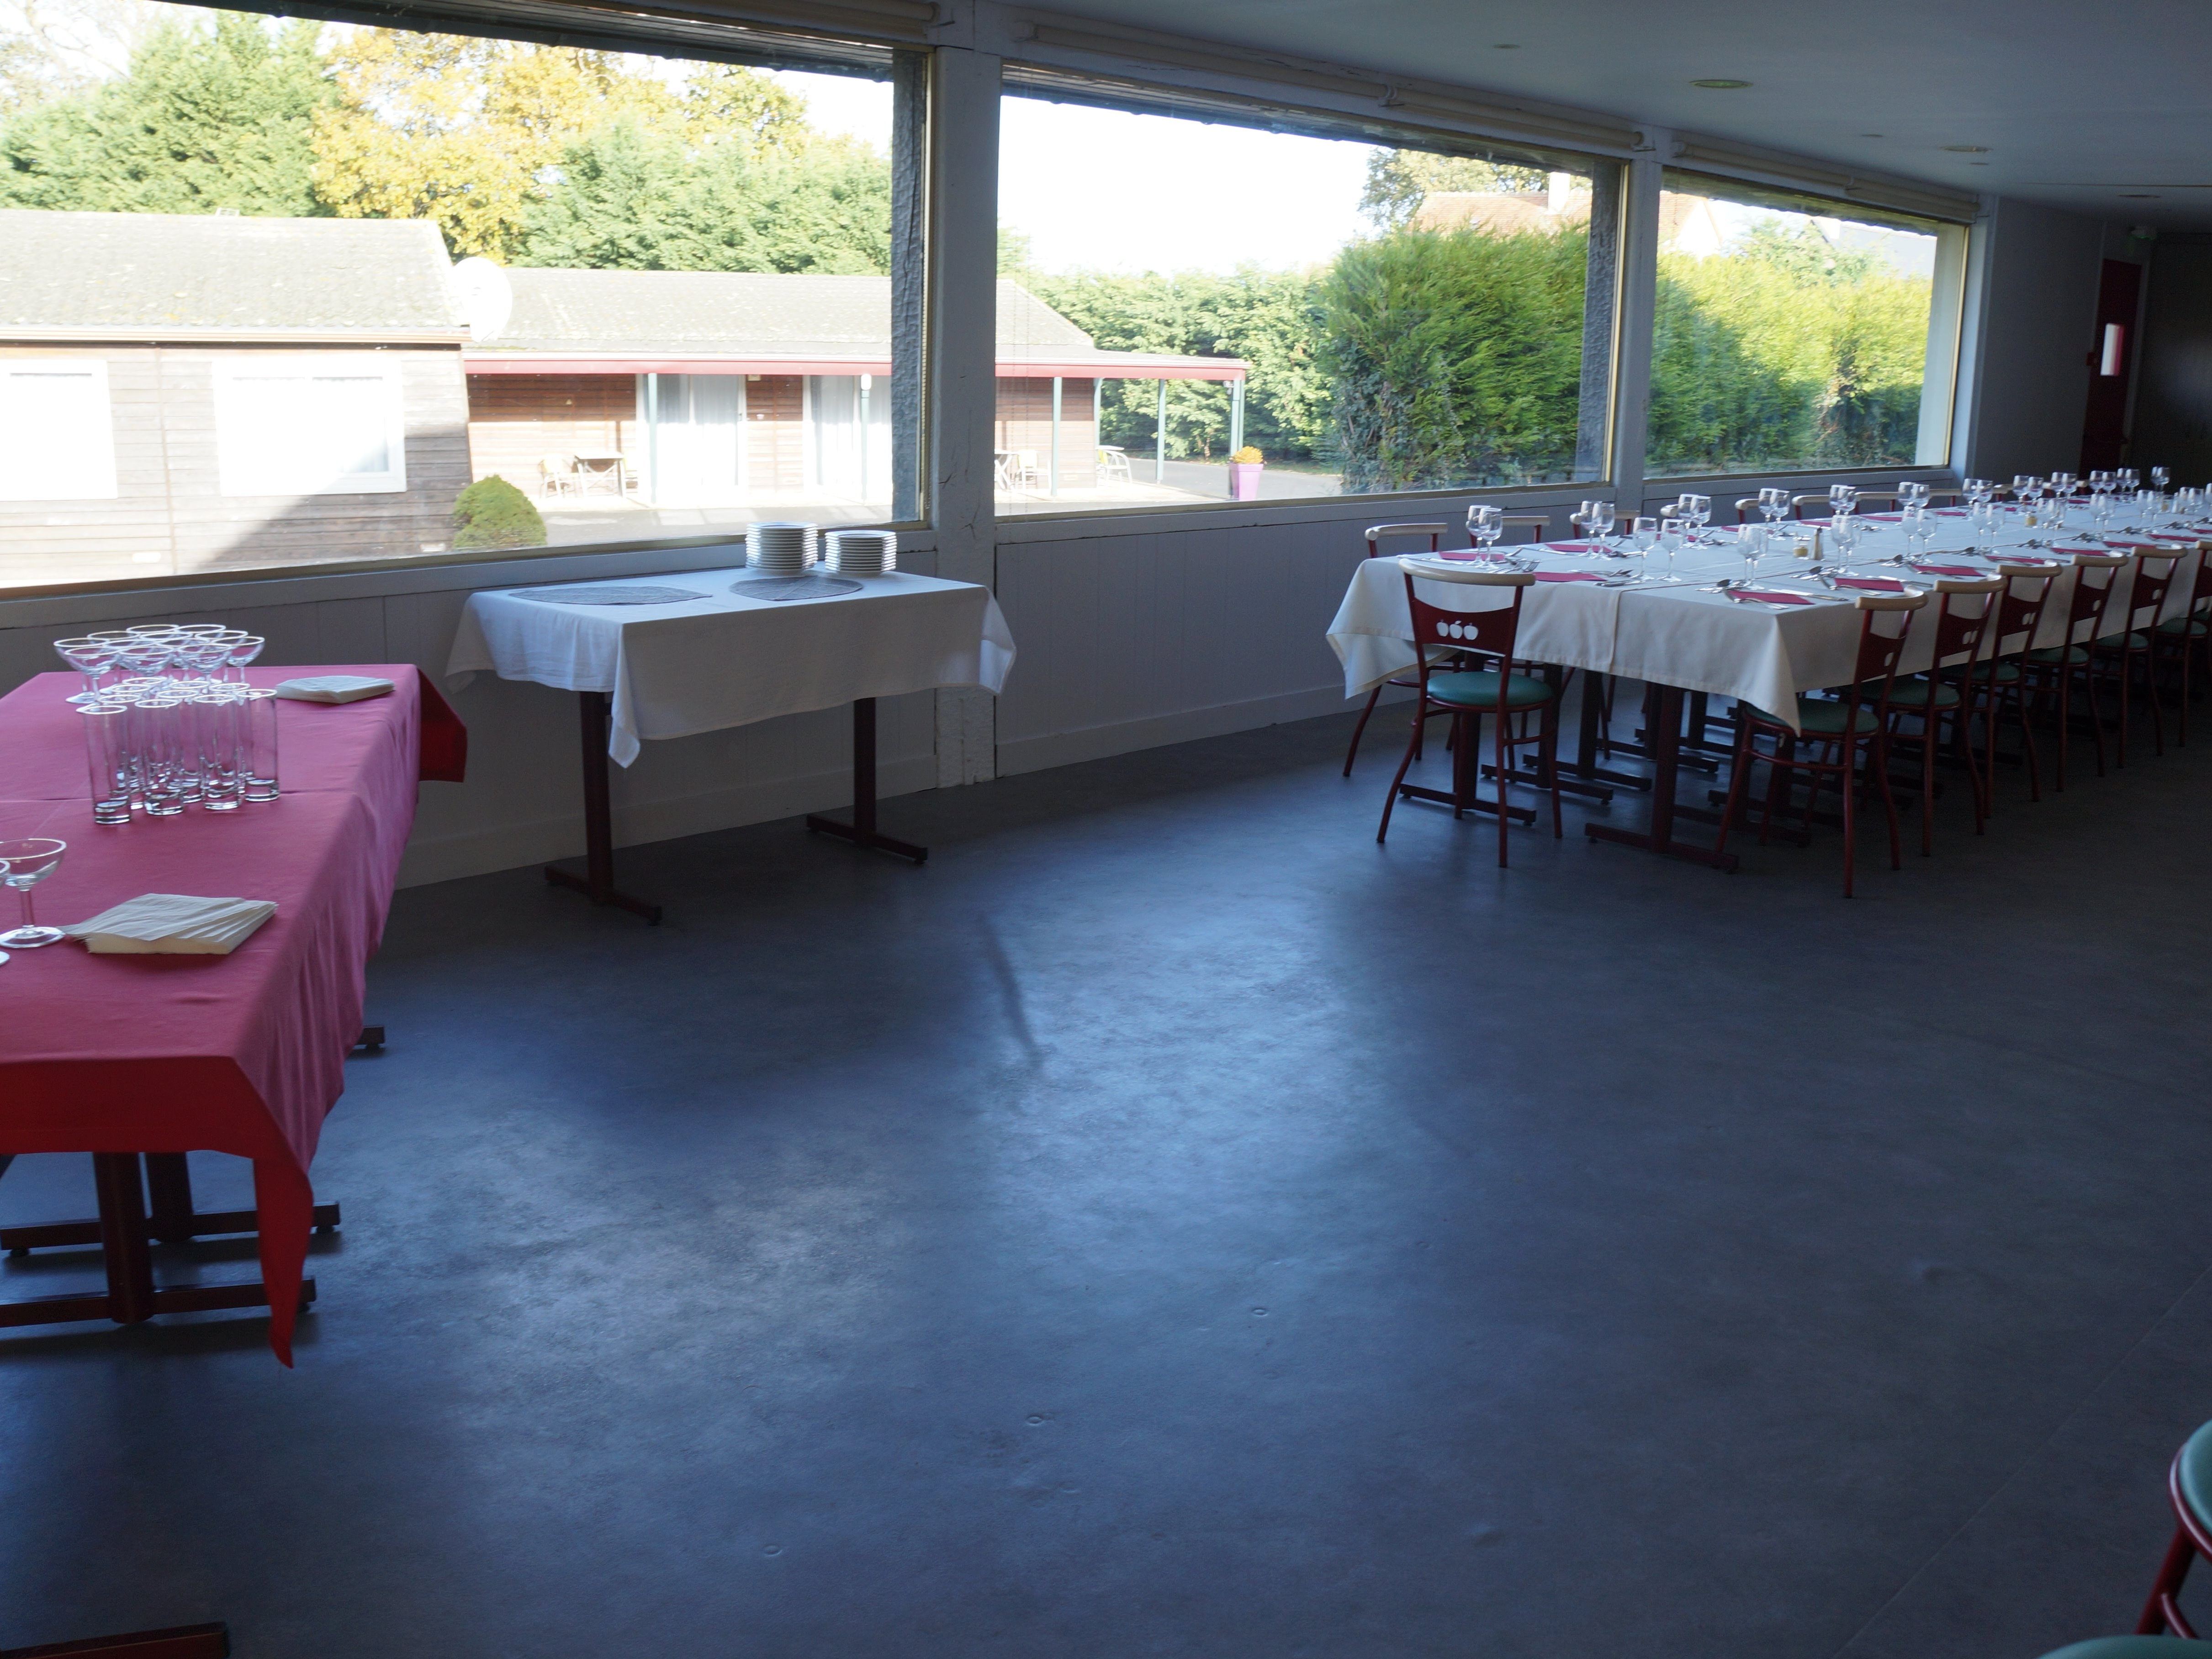 Repas groupes, receptions